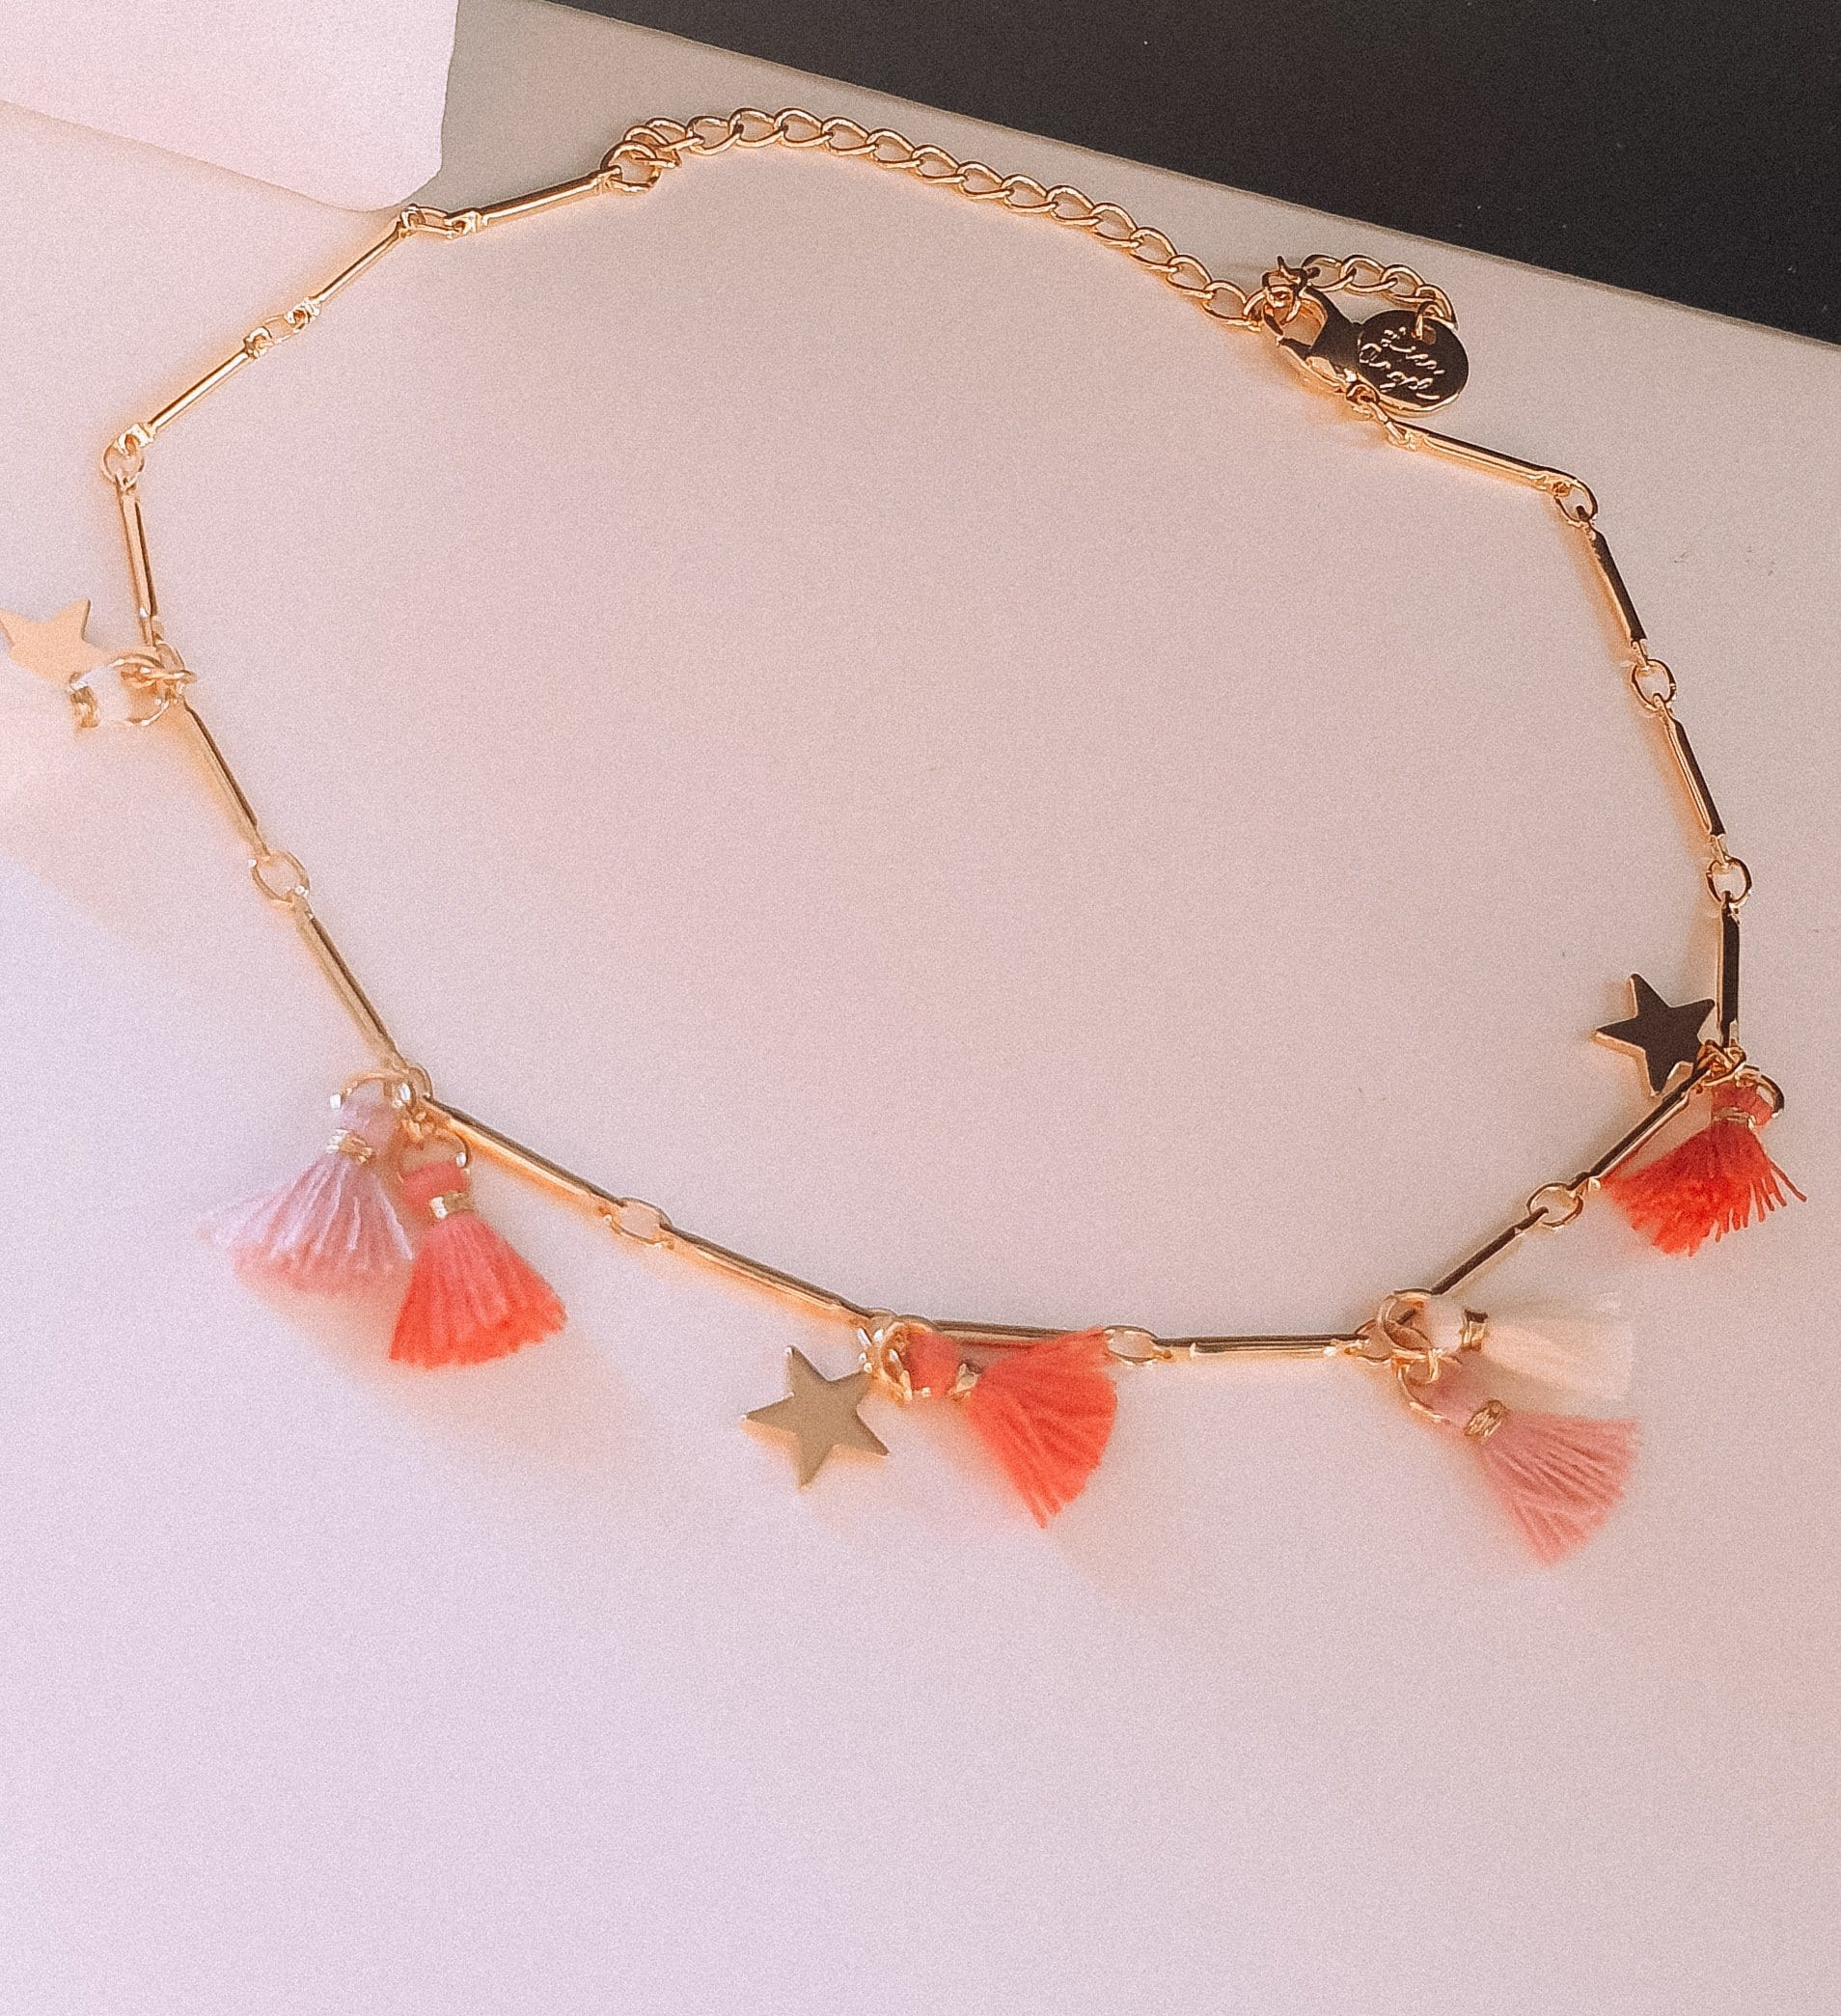 Pink star and tassel anklet